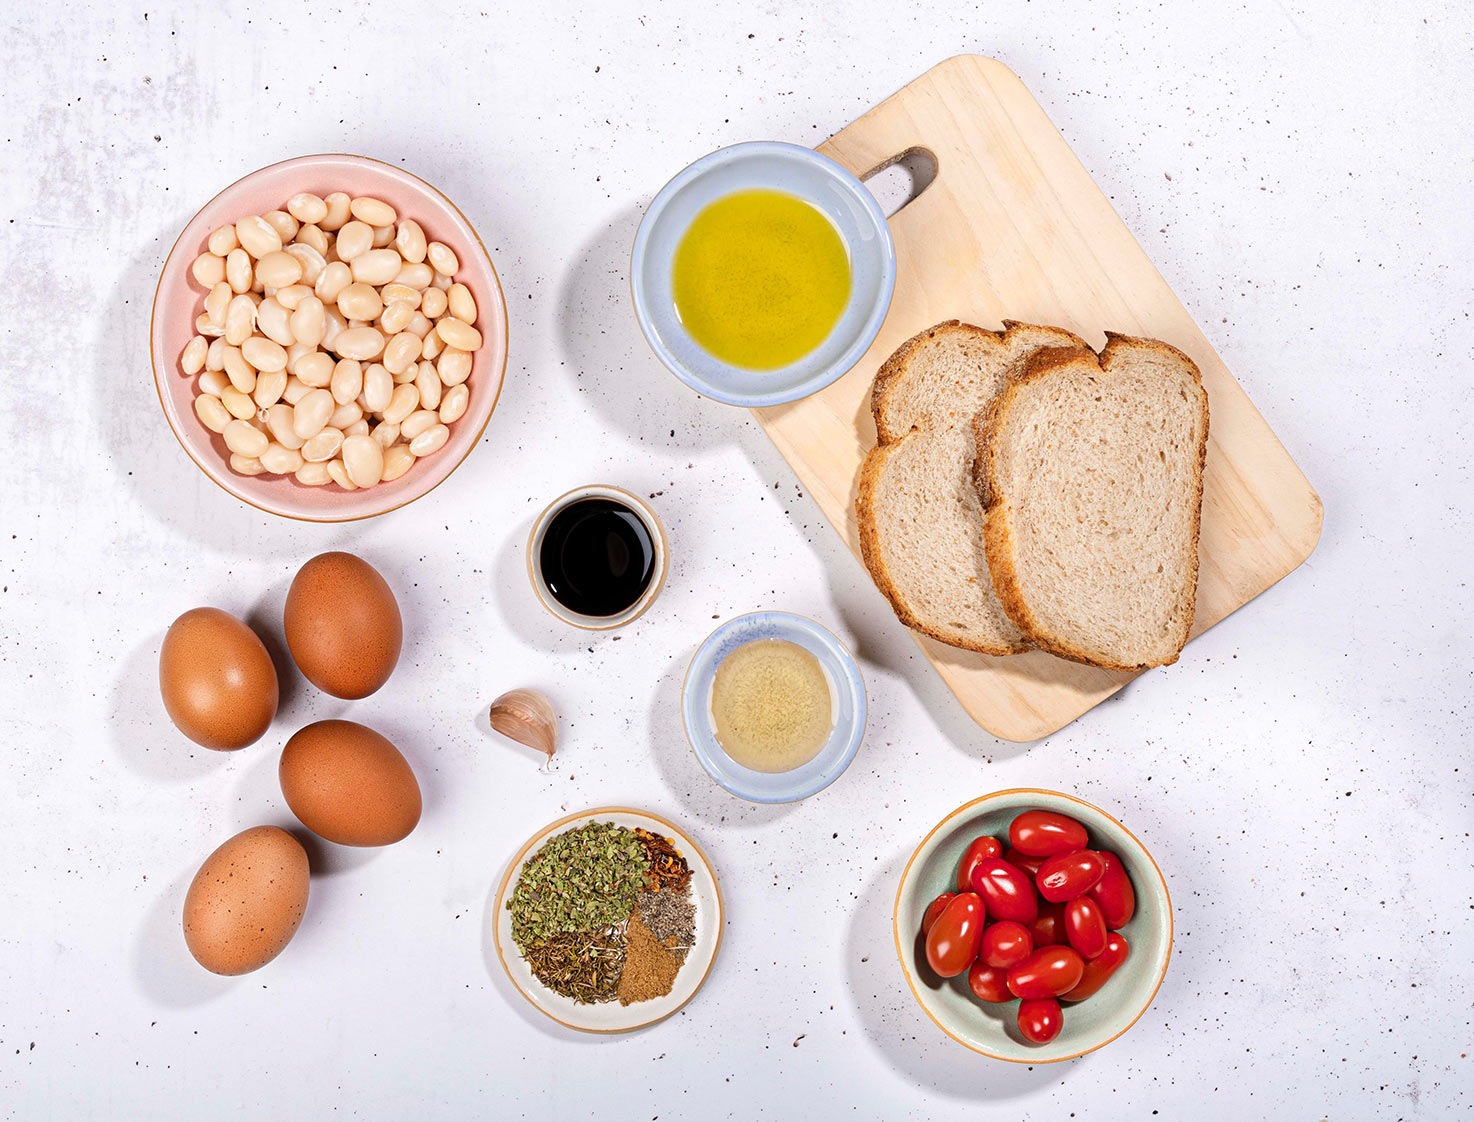 The breakfast ingredients like white beans, eggs, cherry tomatoes, bread slices, olive oil, garlic etc. | Hurry The Food Up